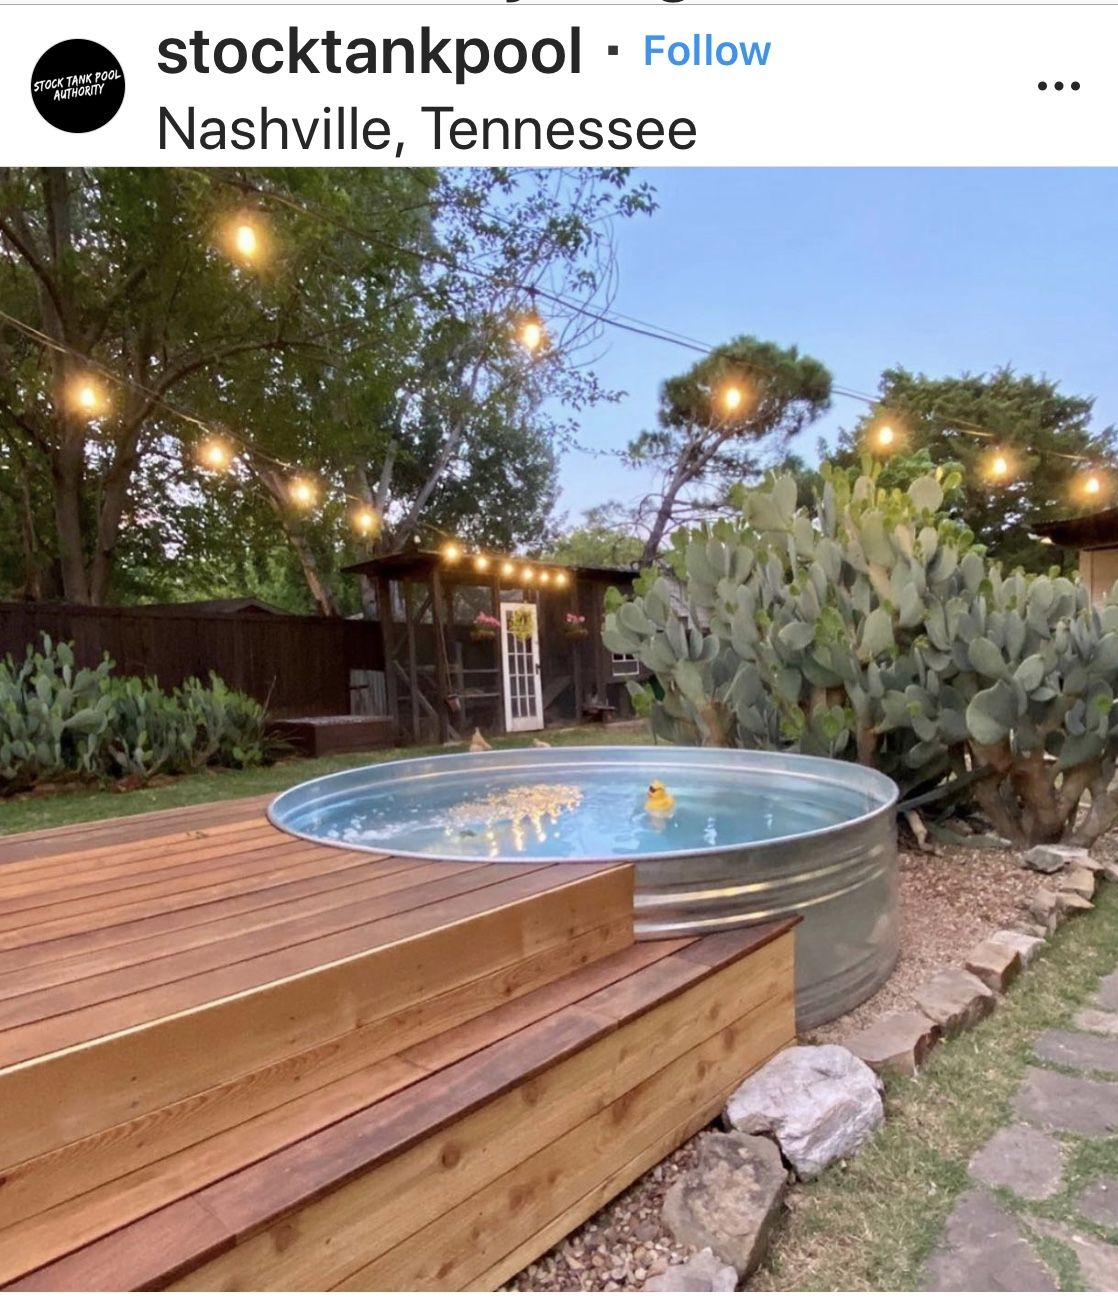 Pin By Coby Davis On Stock Tank Swimming Pool In 2020 Tank Pool Stock Tank Pool Diy Backyard Renovations